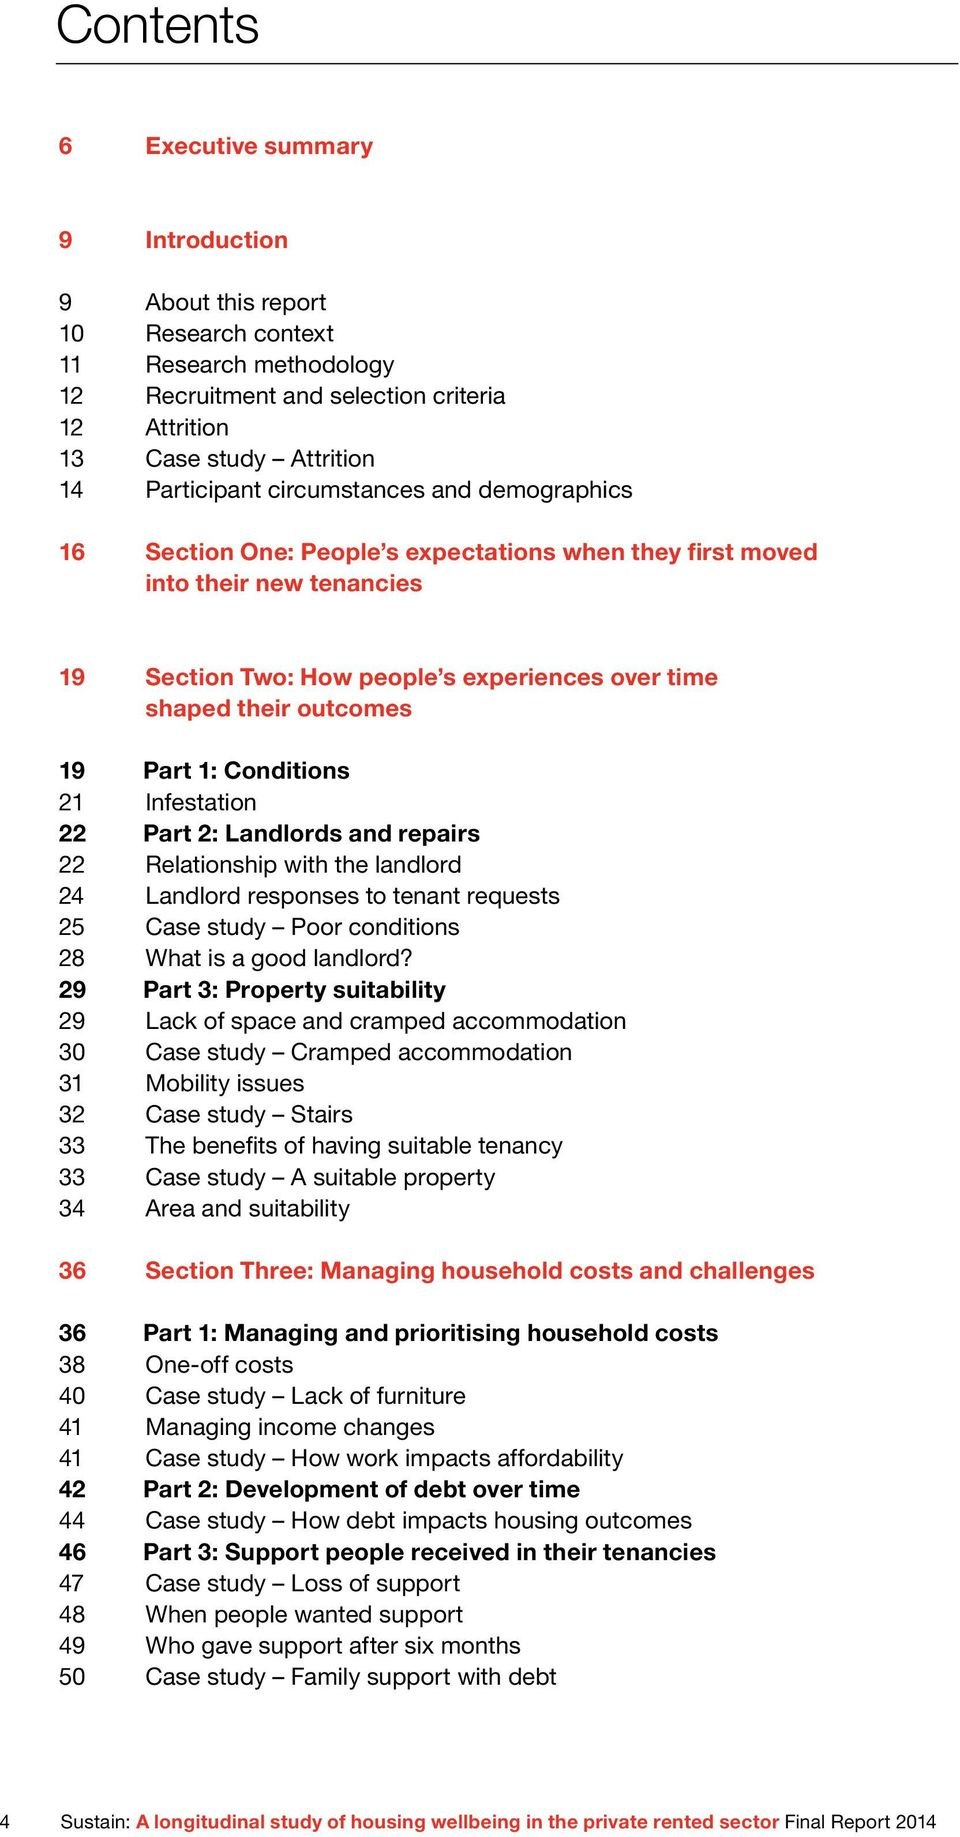 Conditions 21 Infestation 22 Part 2: Landlords and repairs 22 Relationship with the landlord 24 Landlord responses to tenant requests 25 Case study Poor conditions 28 What is a good landlord?